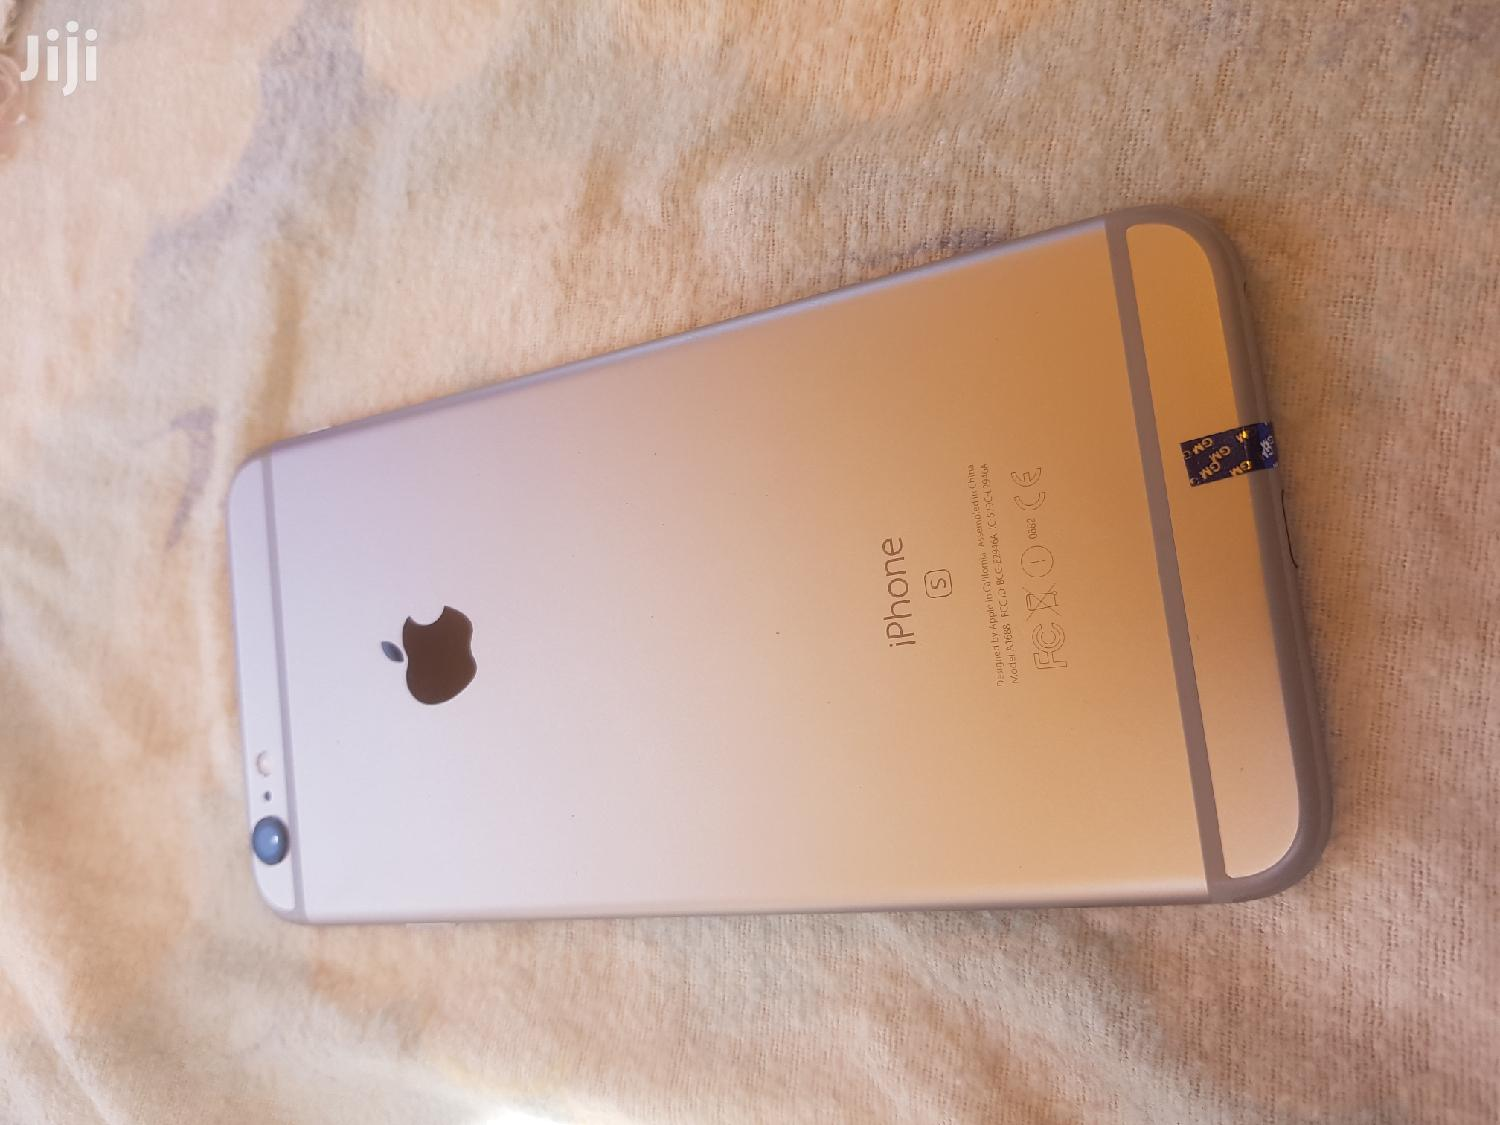 Archive: Apple iPhone 6s Plus 64 GB Silver